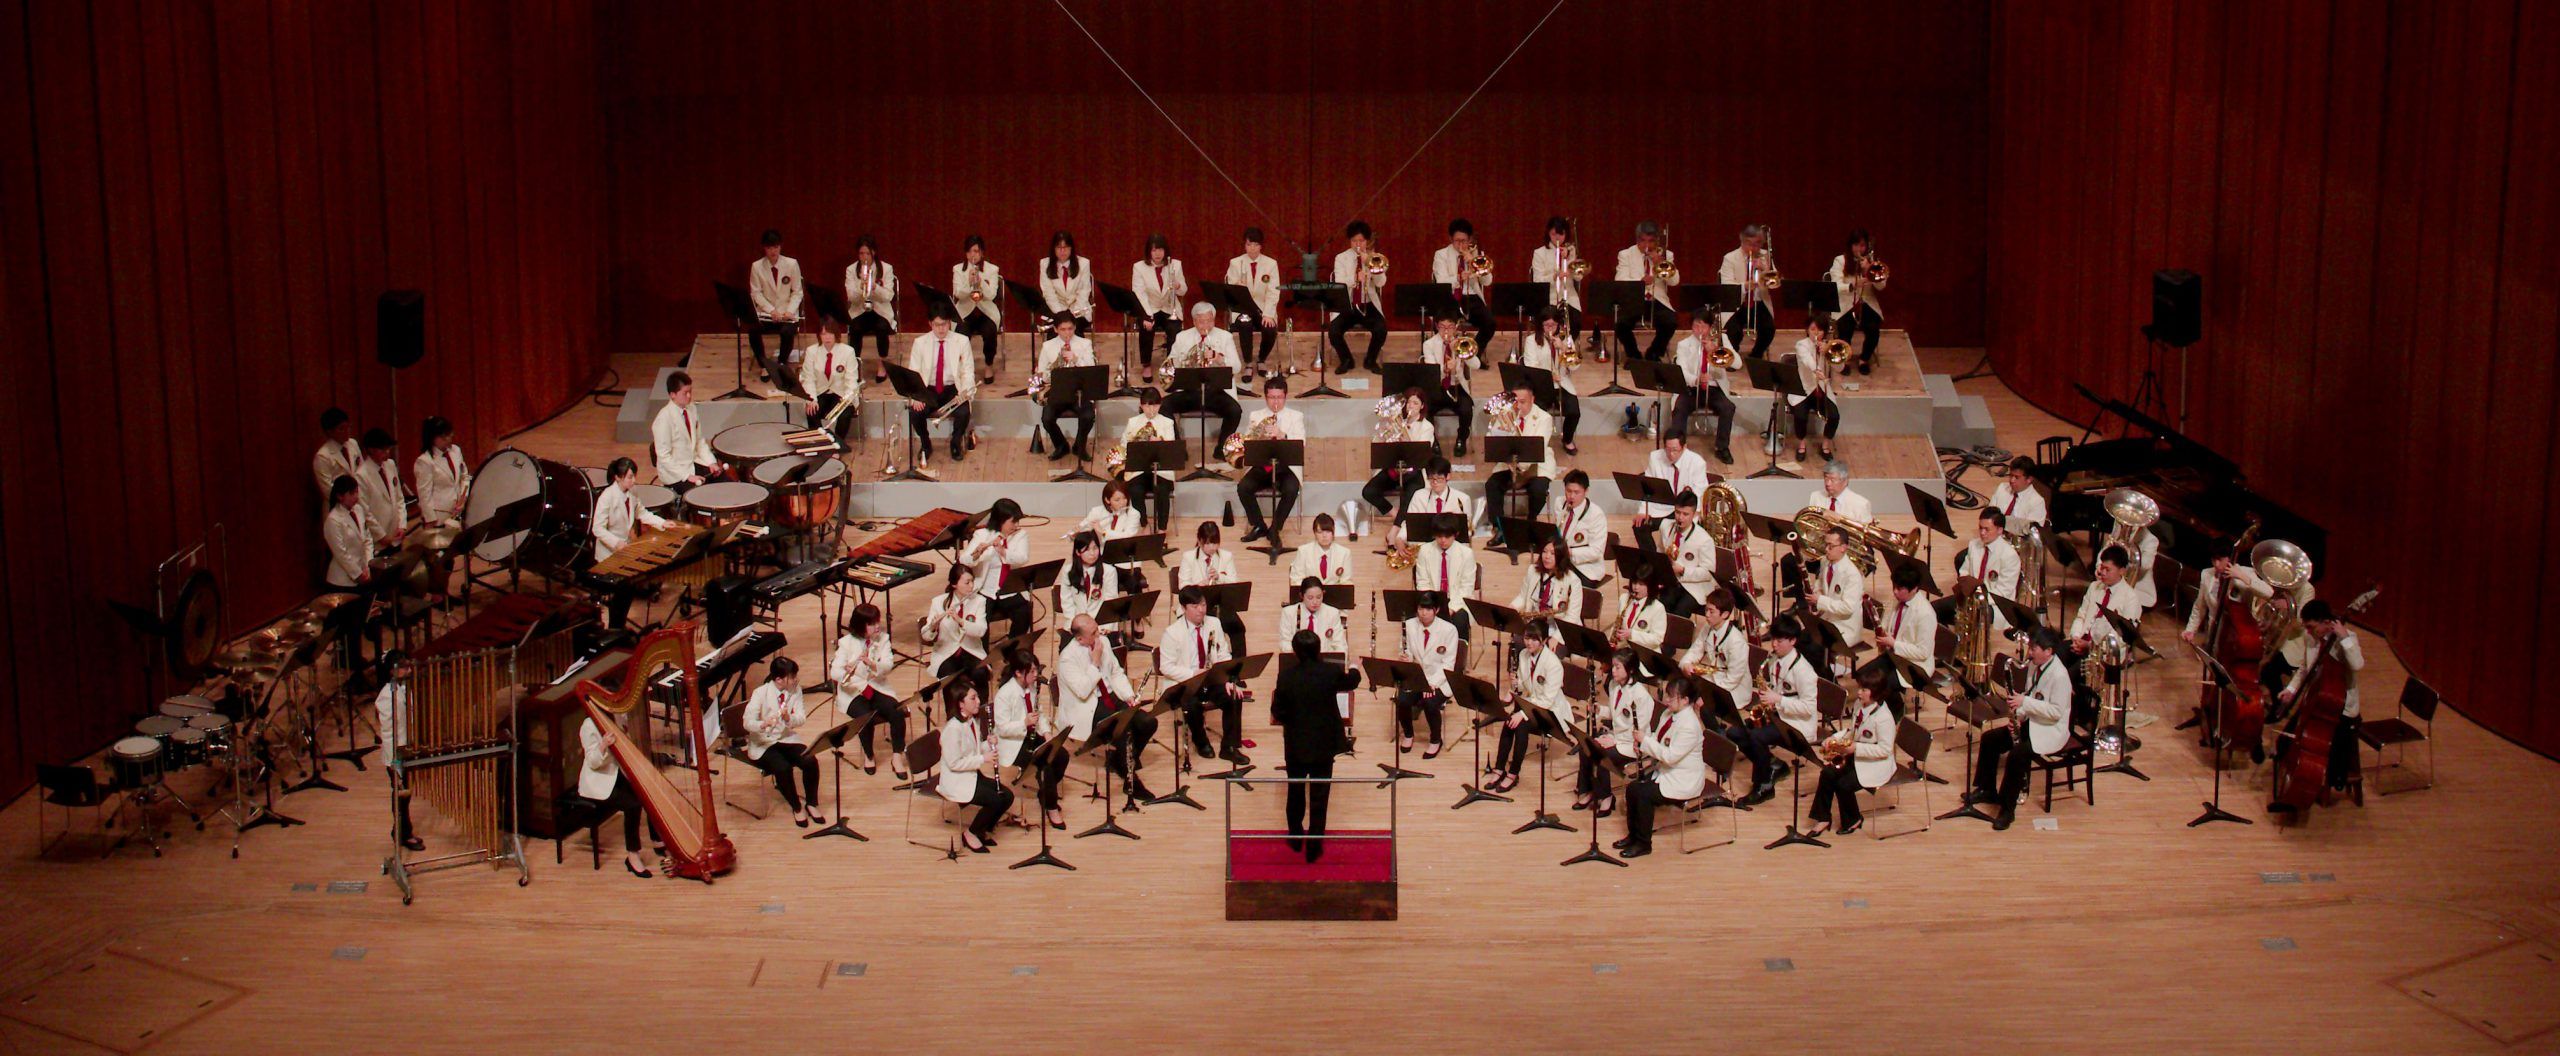 Saga Civic Wind Orchestra